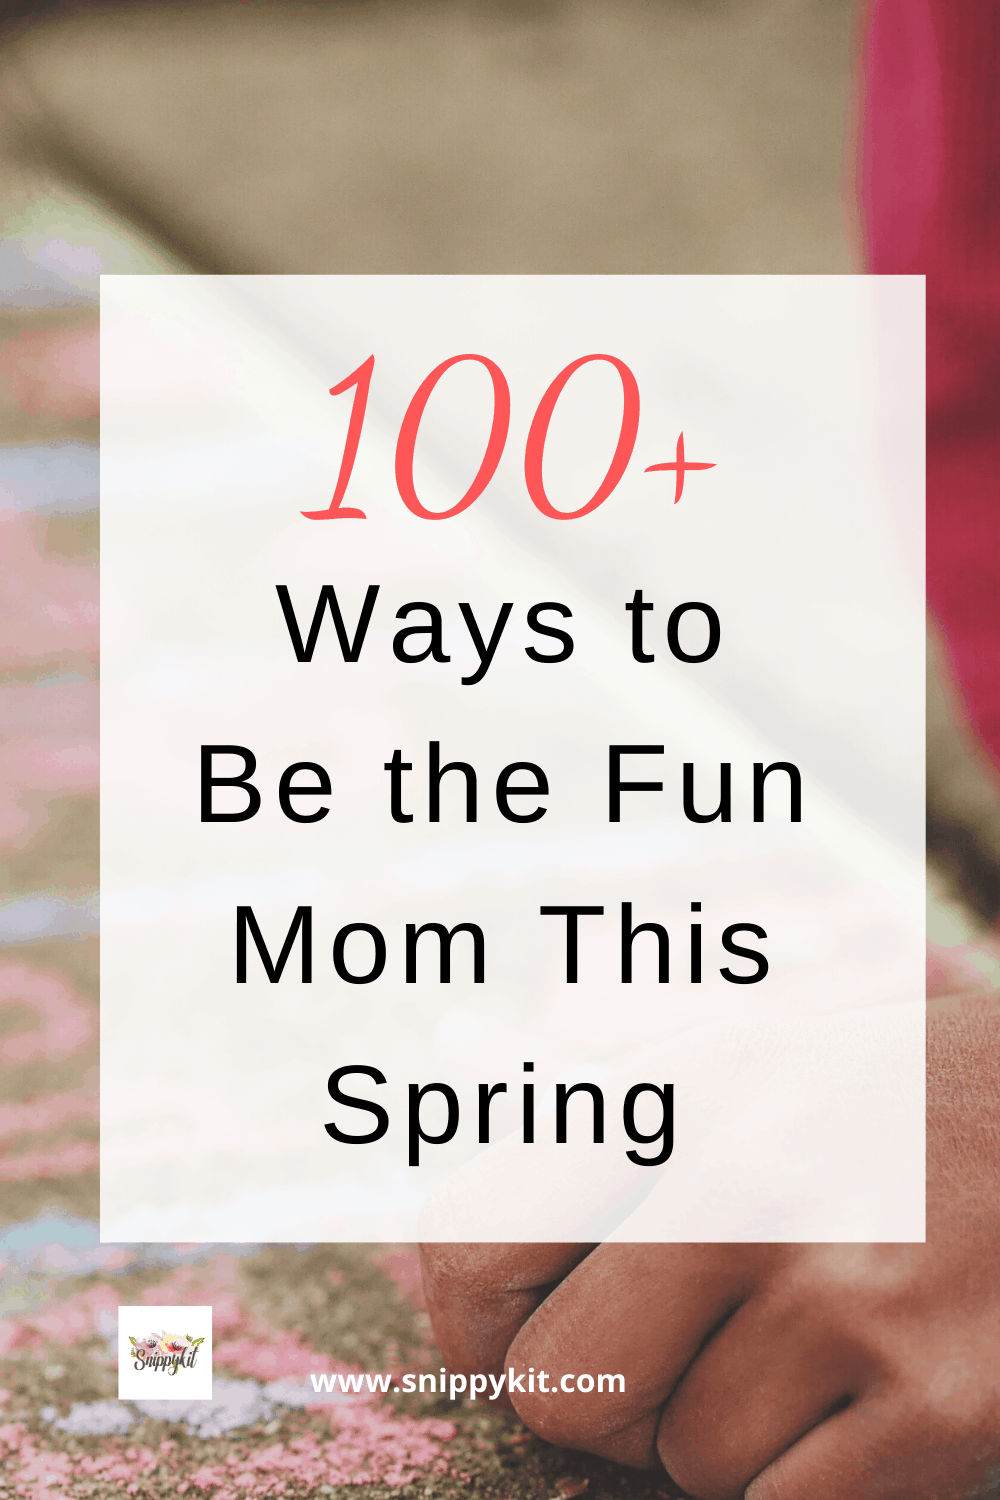 You will love these activities to do with your kids. Become a fun mom that your kids will love to spend time with and make amazing memories. #kidsactivities #family #parenting #motherhood